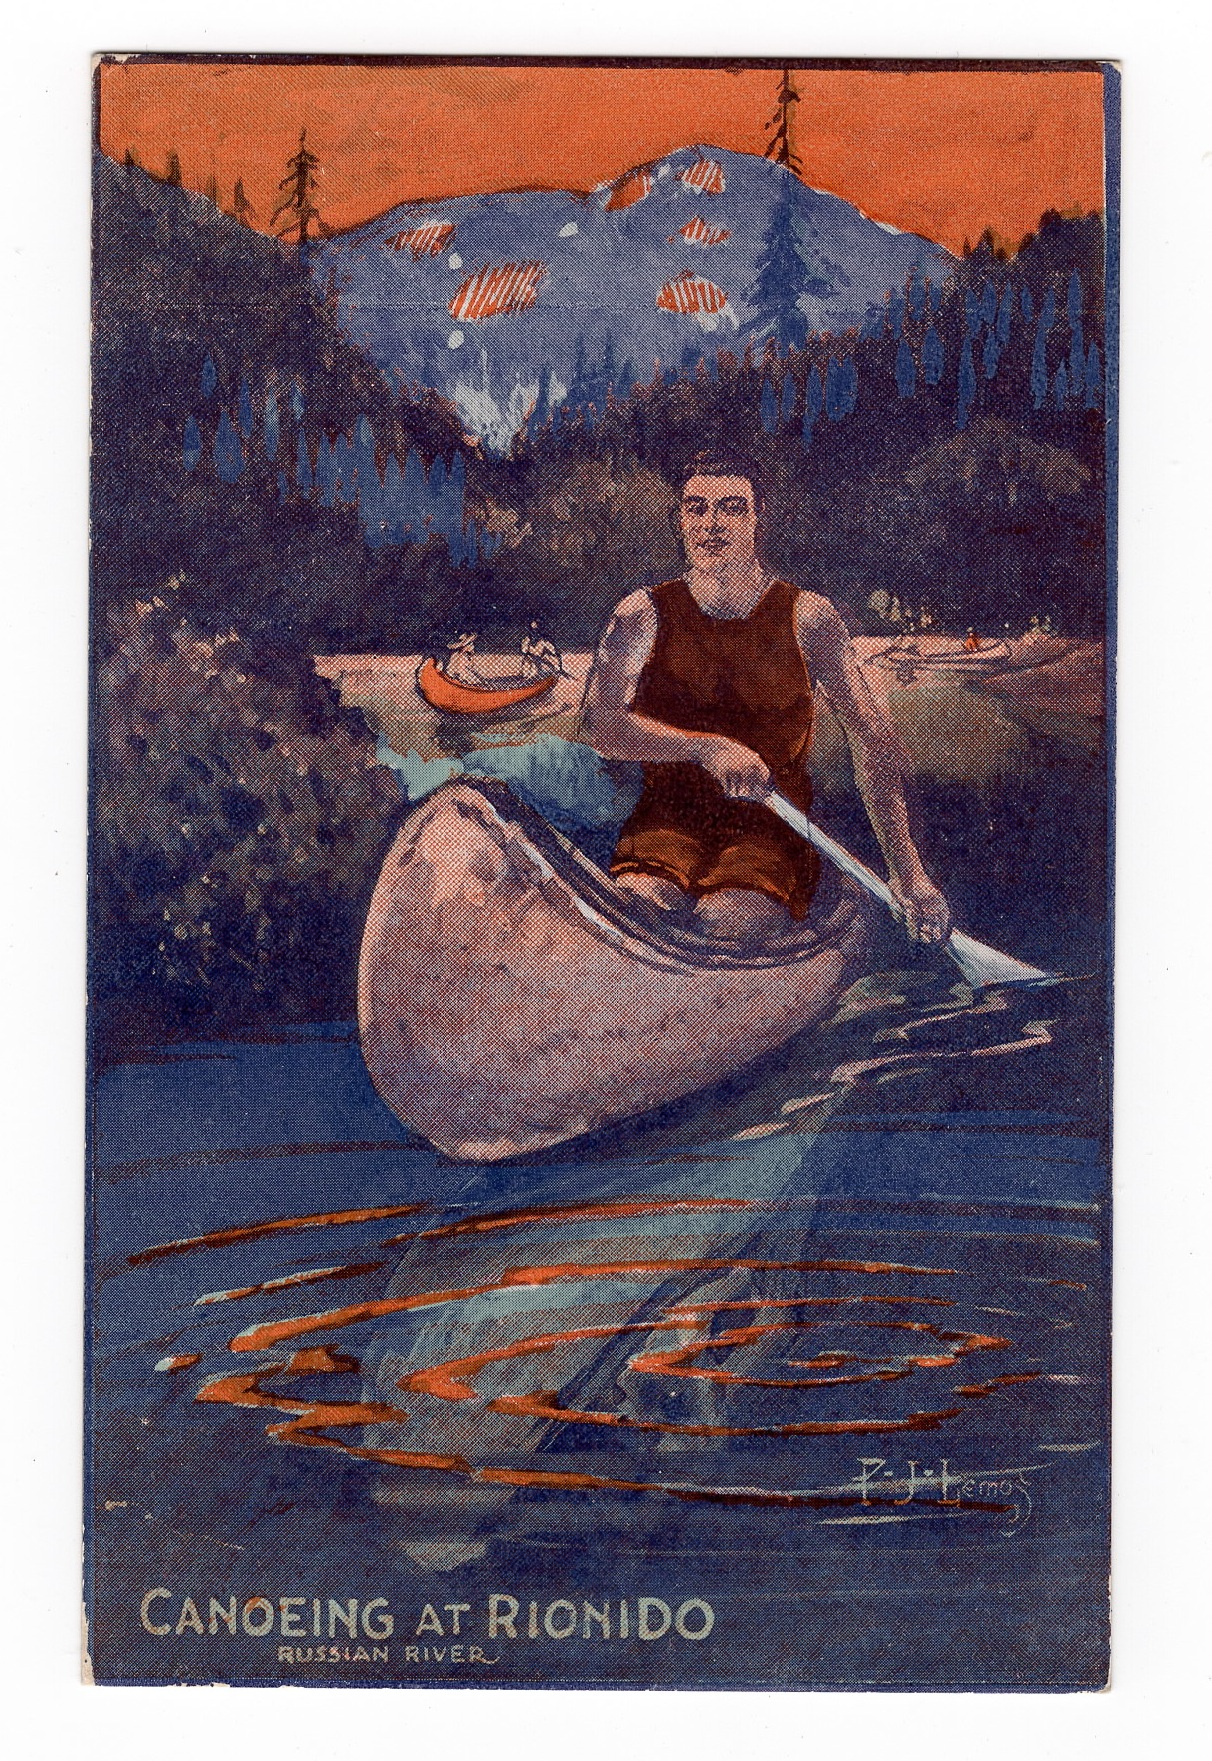 Canoeing at Rionido postcard